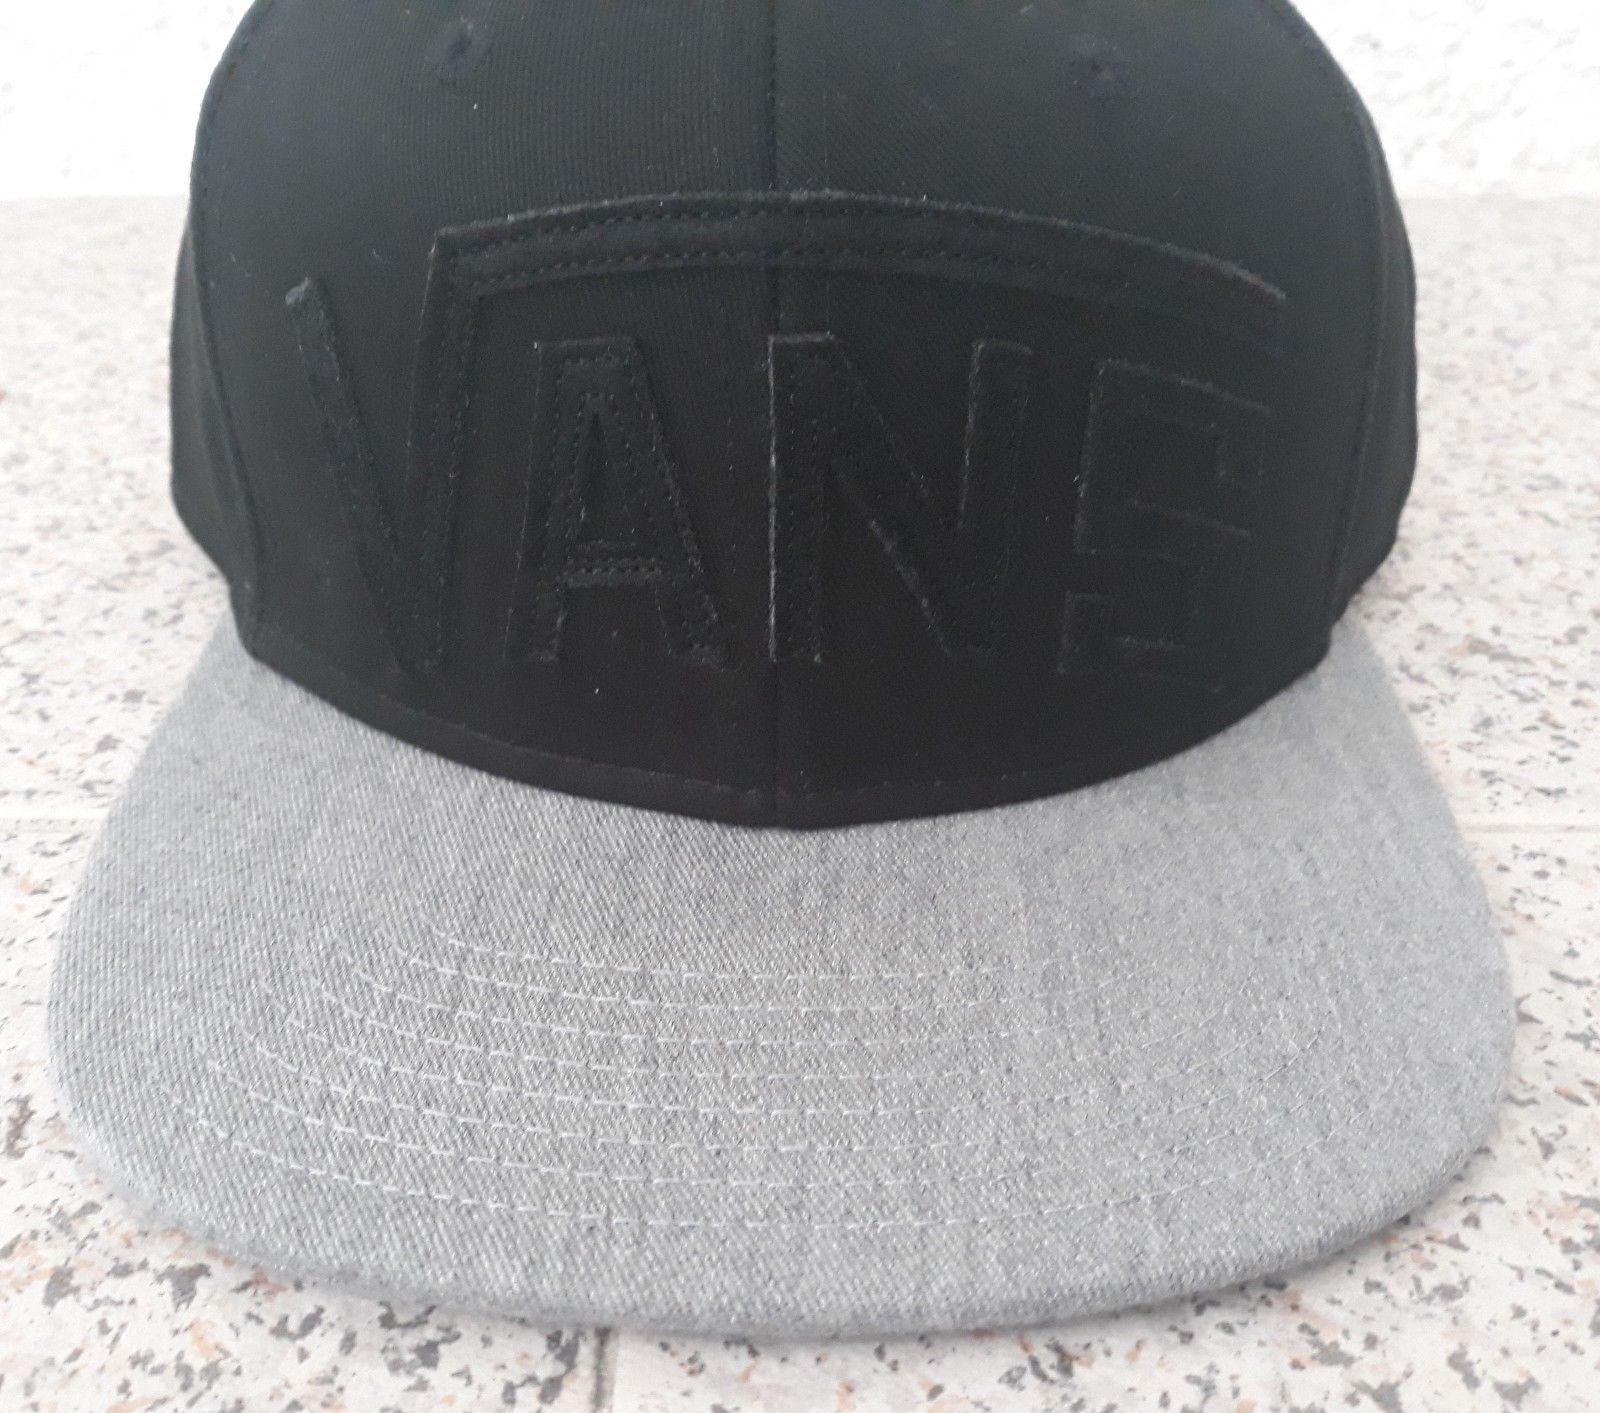 Vans Black Cap Grey Casual Hat 100% Cotton Adults One Size  Flat Brim 6 Panel